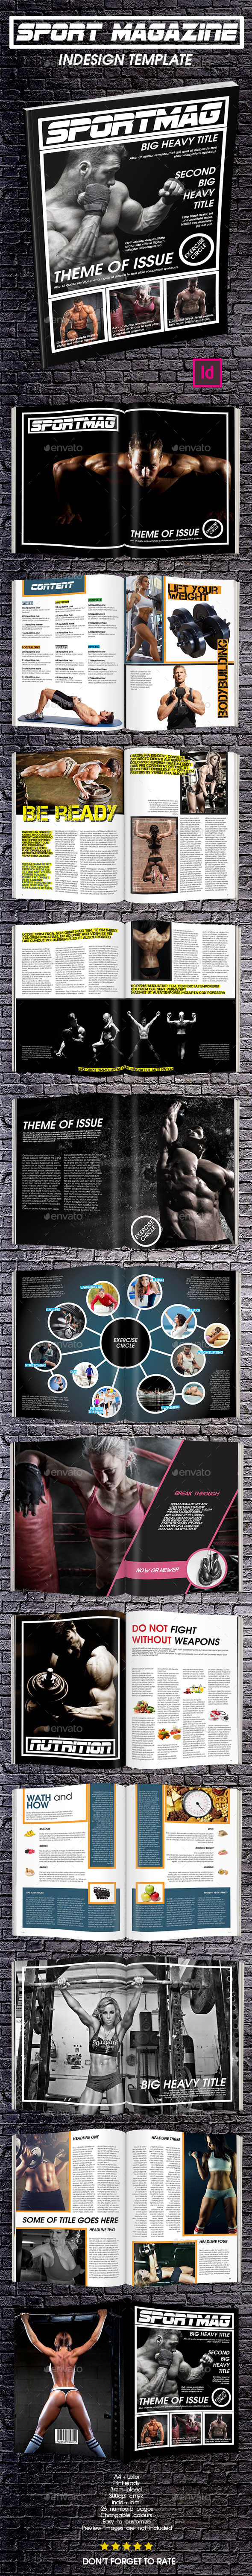 Sport Magazine Template Issue Two - Magazines Print Templates